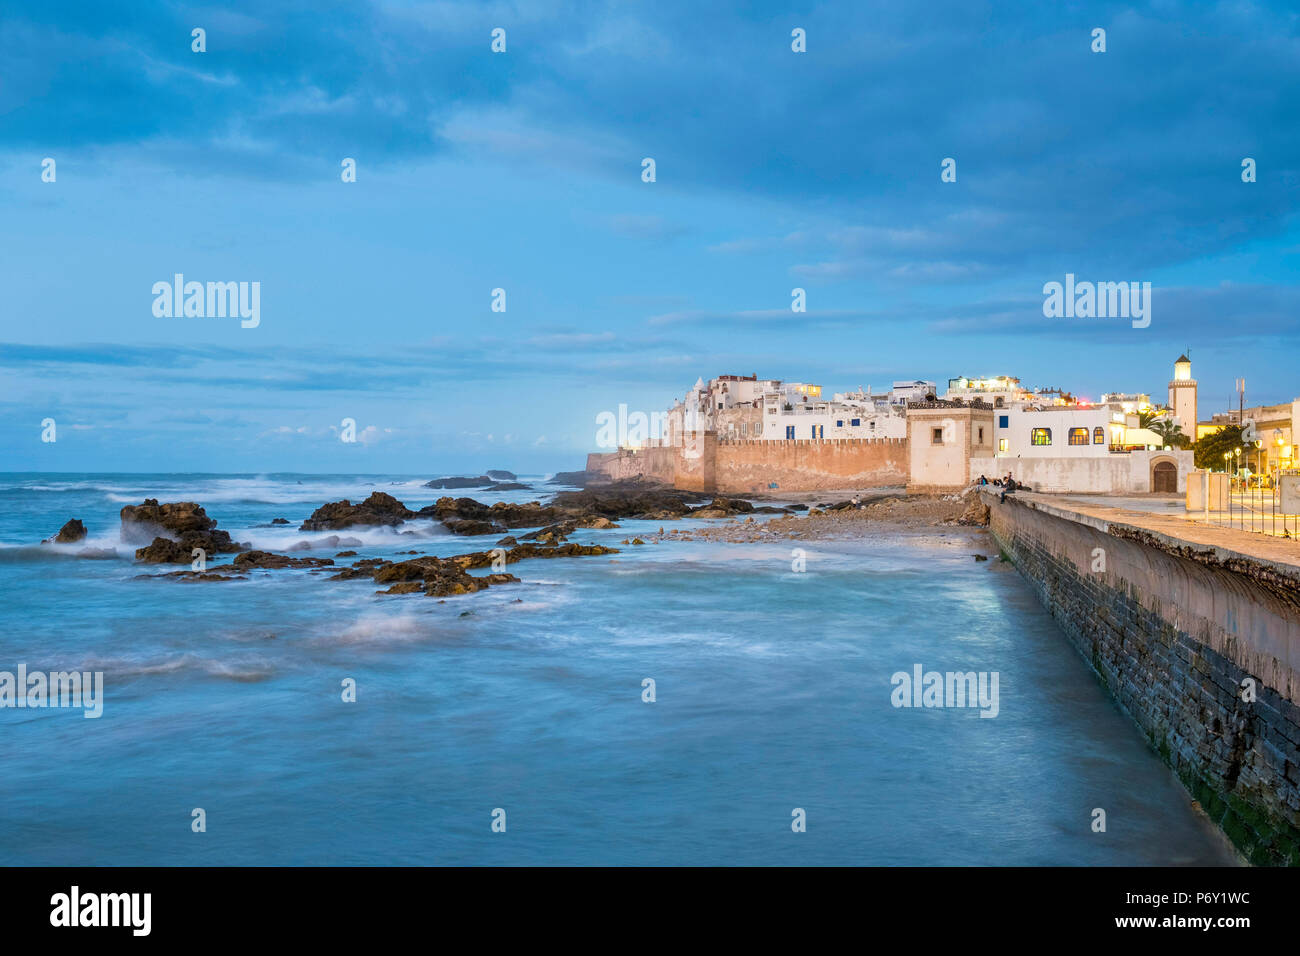 Morocco, Marrakesh-Safi (Marrakesh-Tensift-El Haouz) region, Essaouira. Medina (old town) at dusk, protected by 18th-century seafront ramparts,  Skala de la Kasbah. - Stock Image